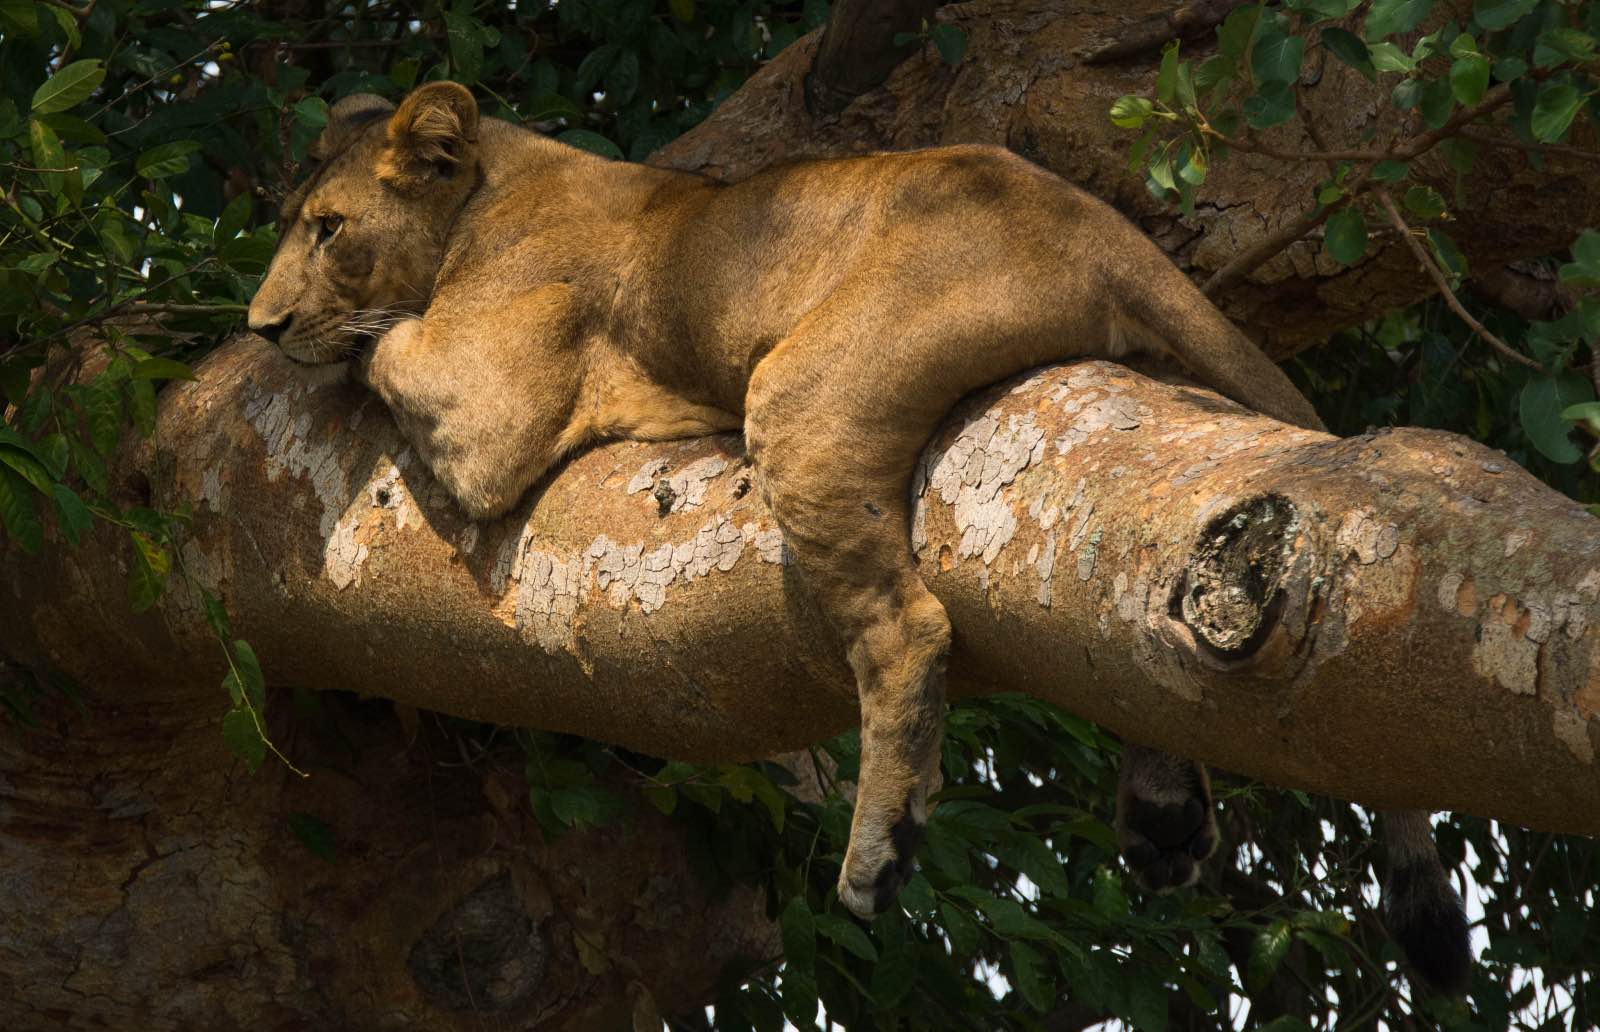 Lions sleeping in a sycamore fig tree in Queen Elizabeth National Park where they famously climb trees